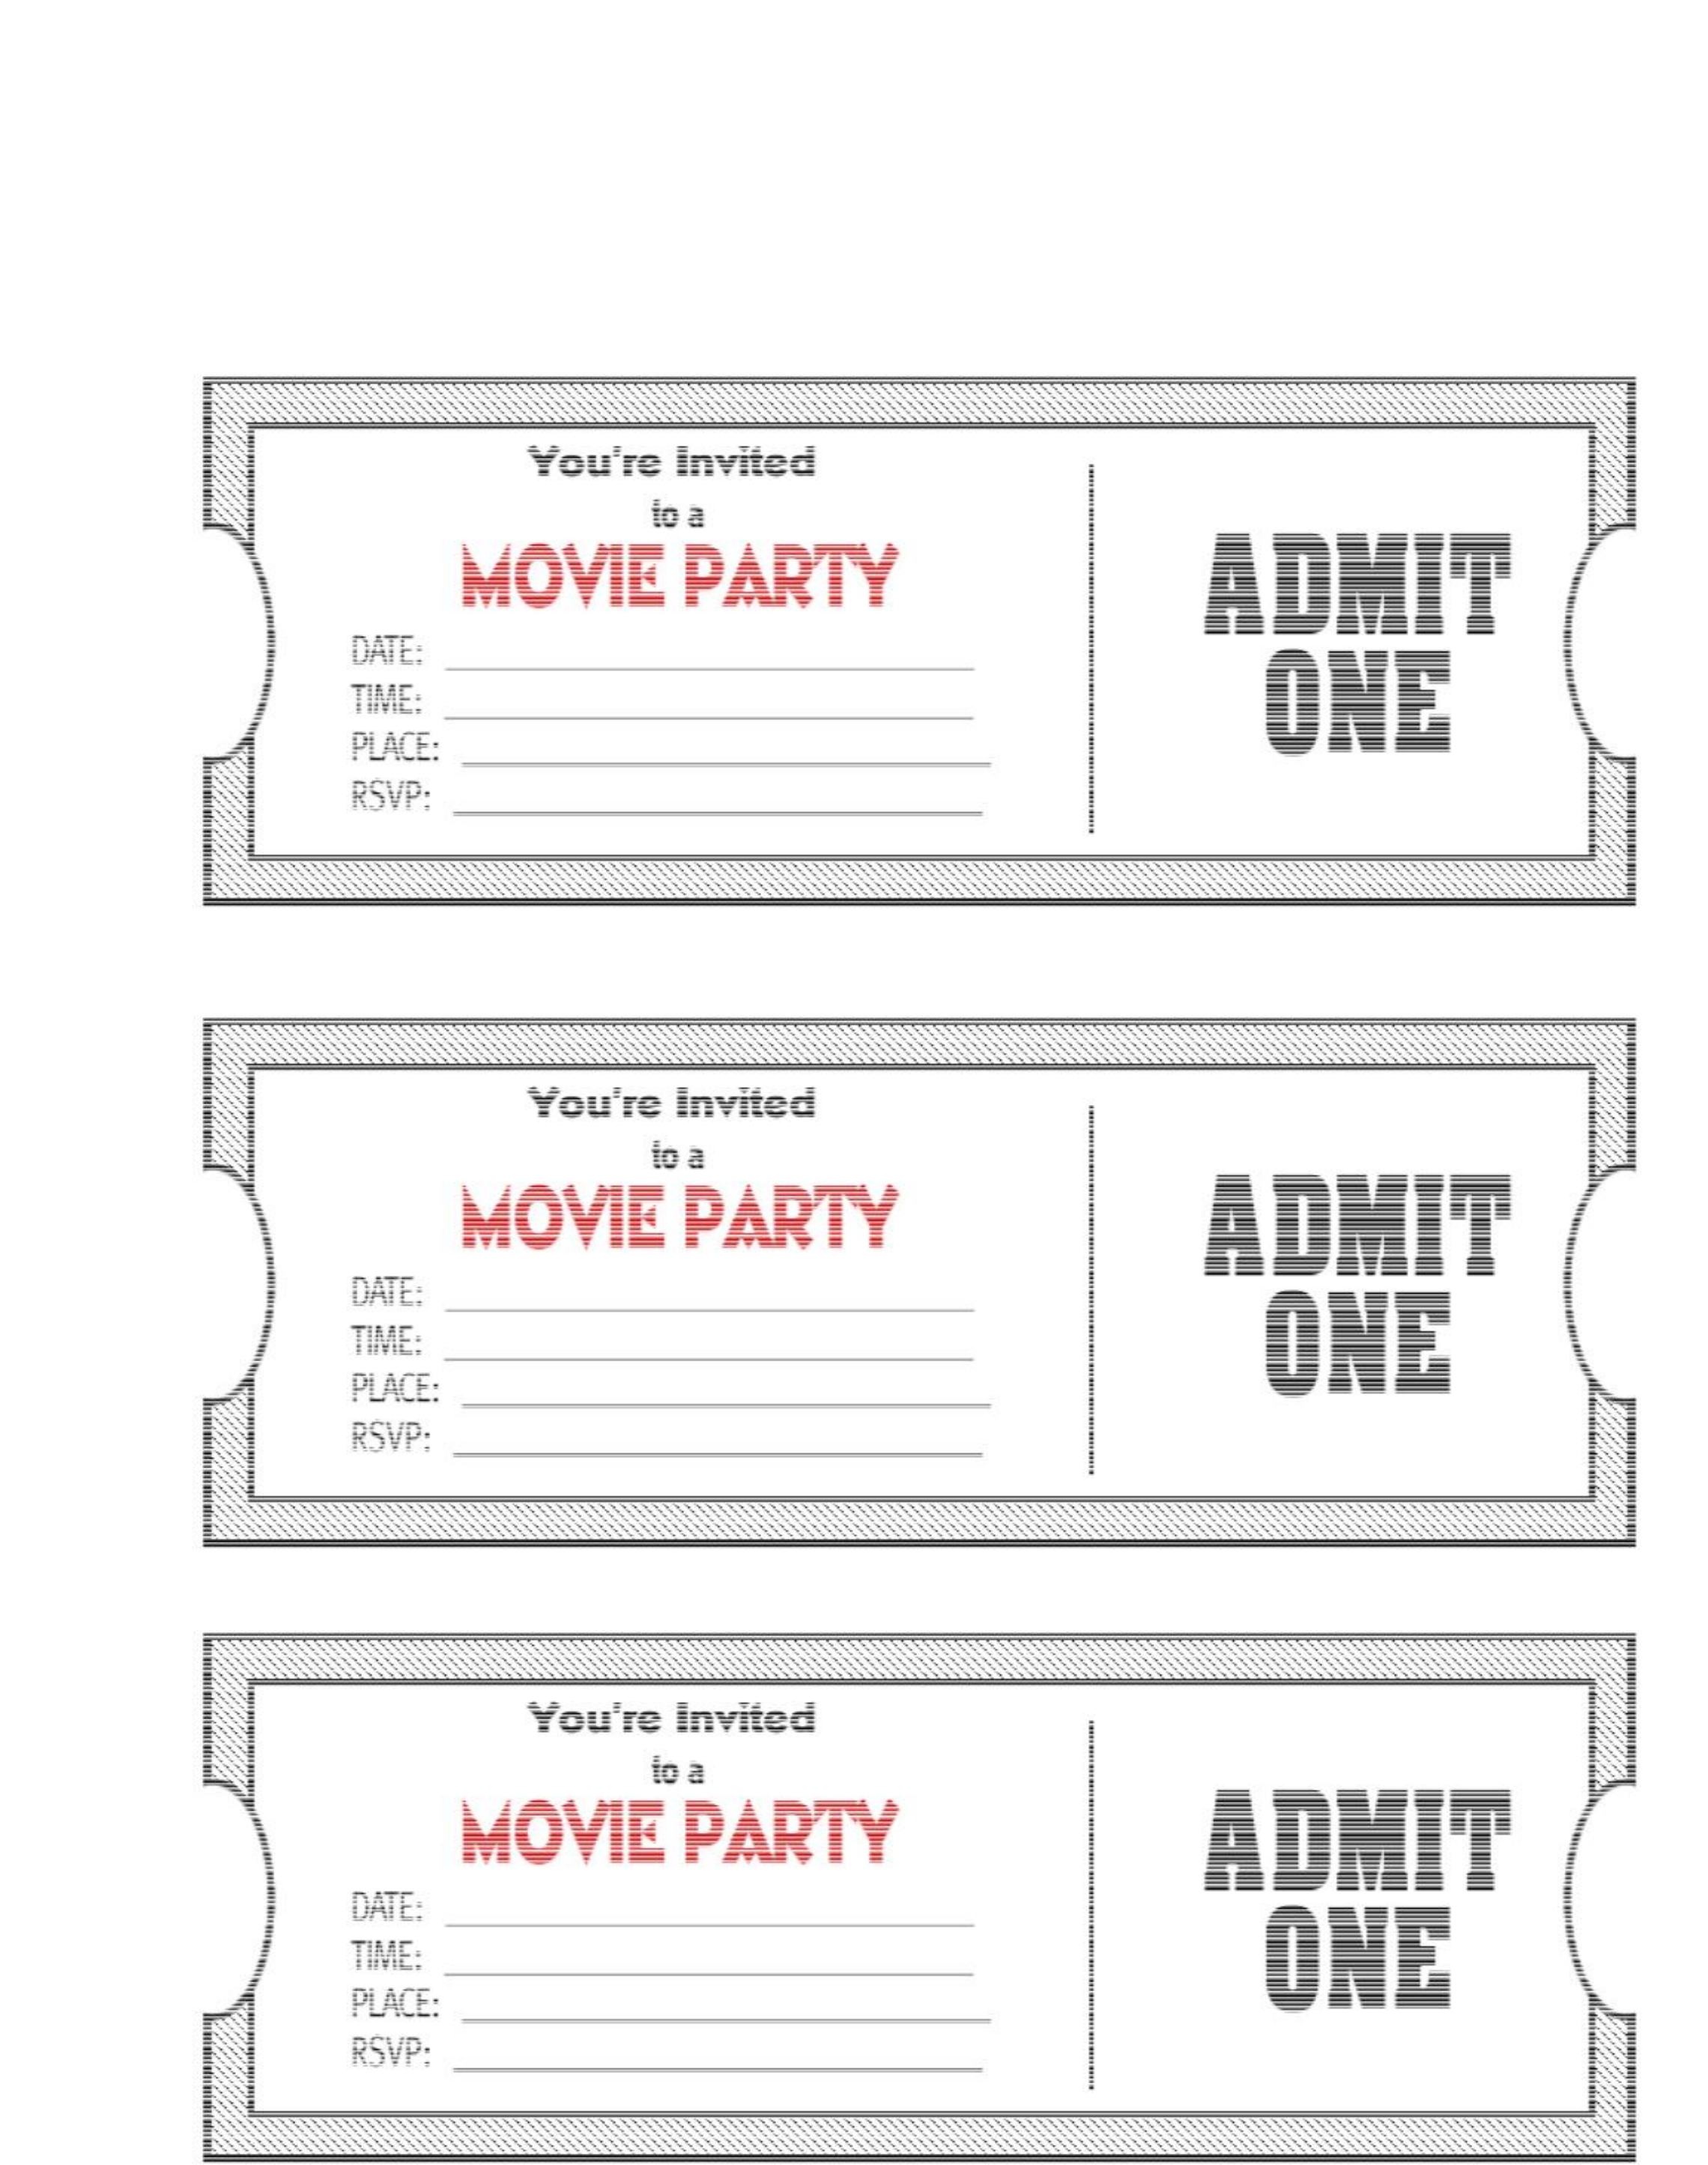 Tickets template etamemibawa movie ticket party invitation template free download stopboris Gallery